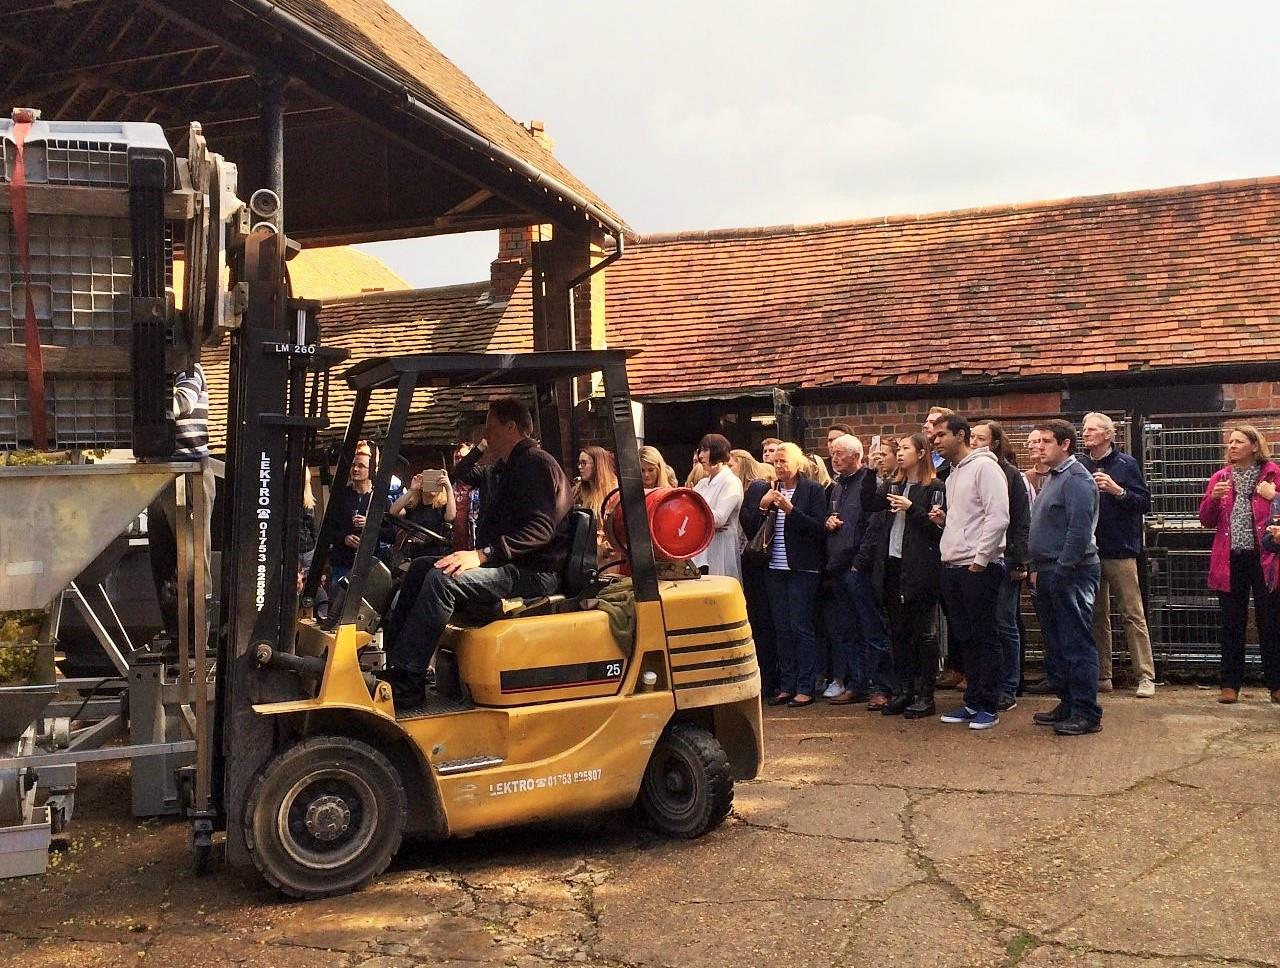 Monday 13th April 2020 at 2 pm - EASTER MONDAY - Vineyard Tour & Wine Tasting